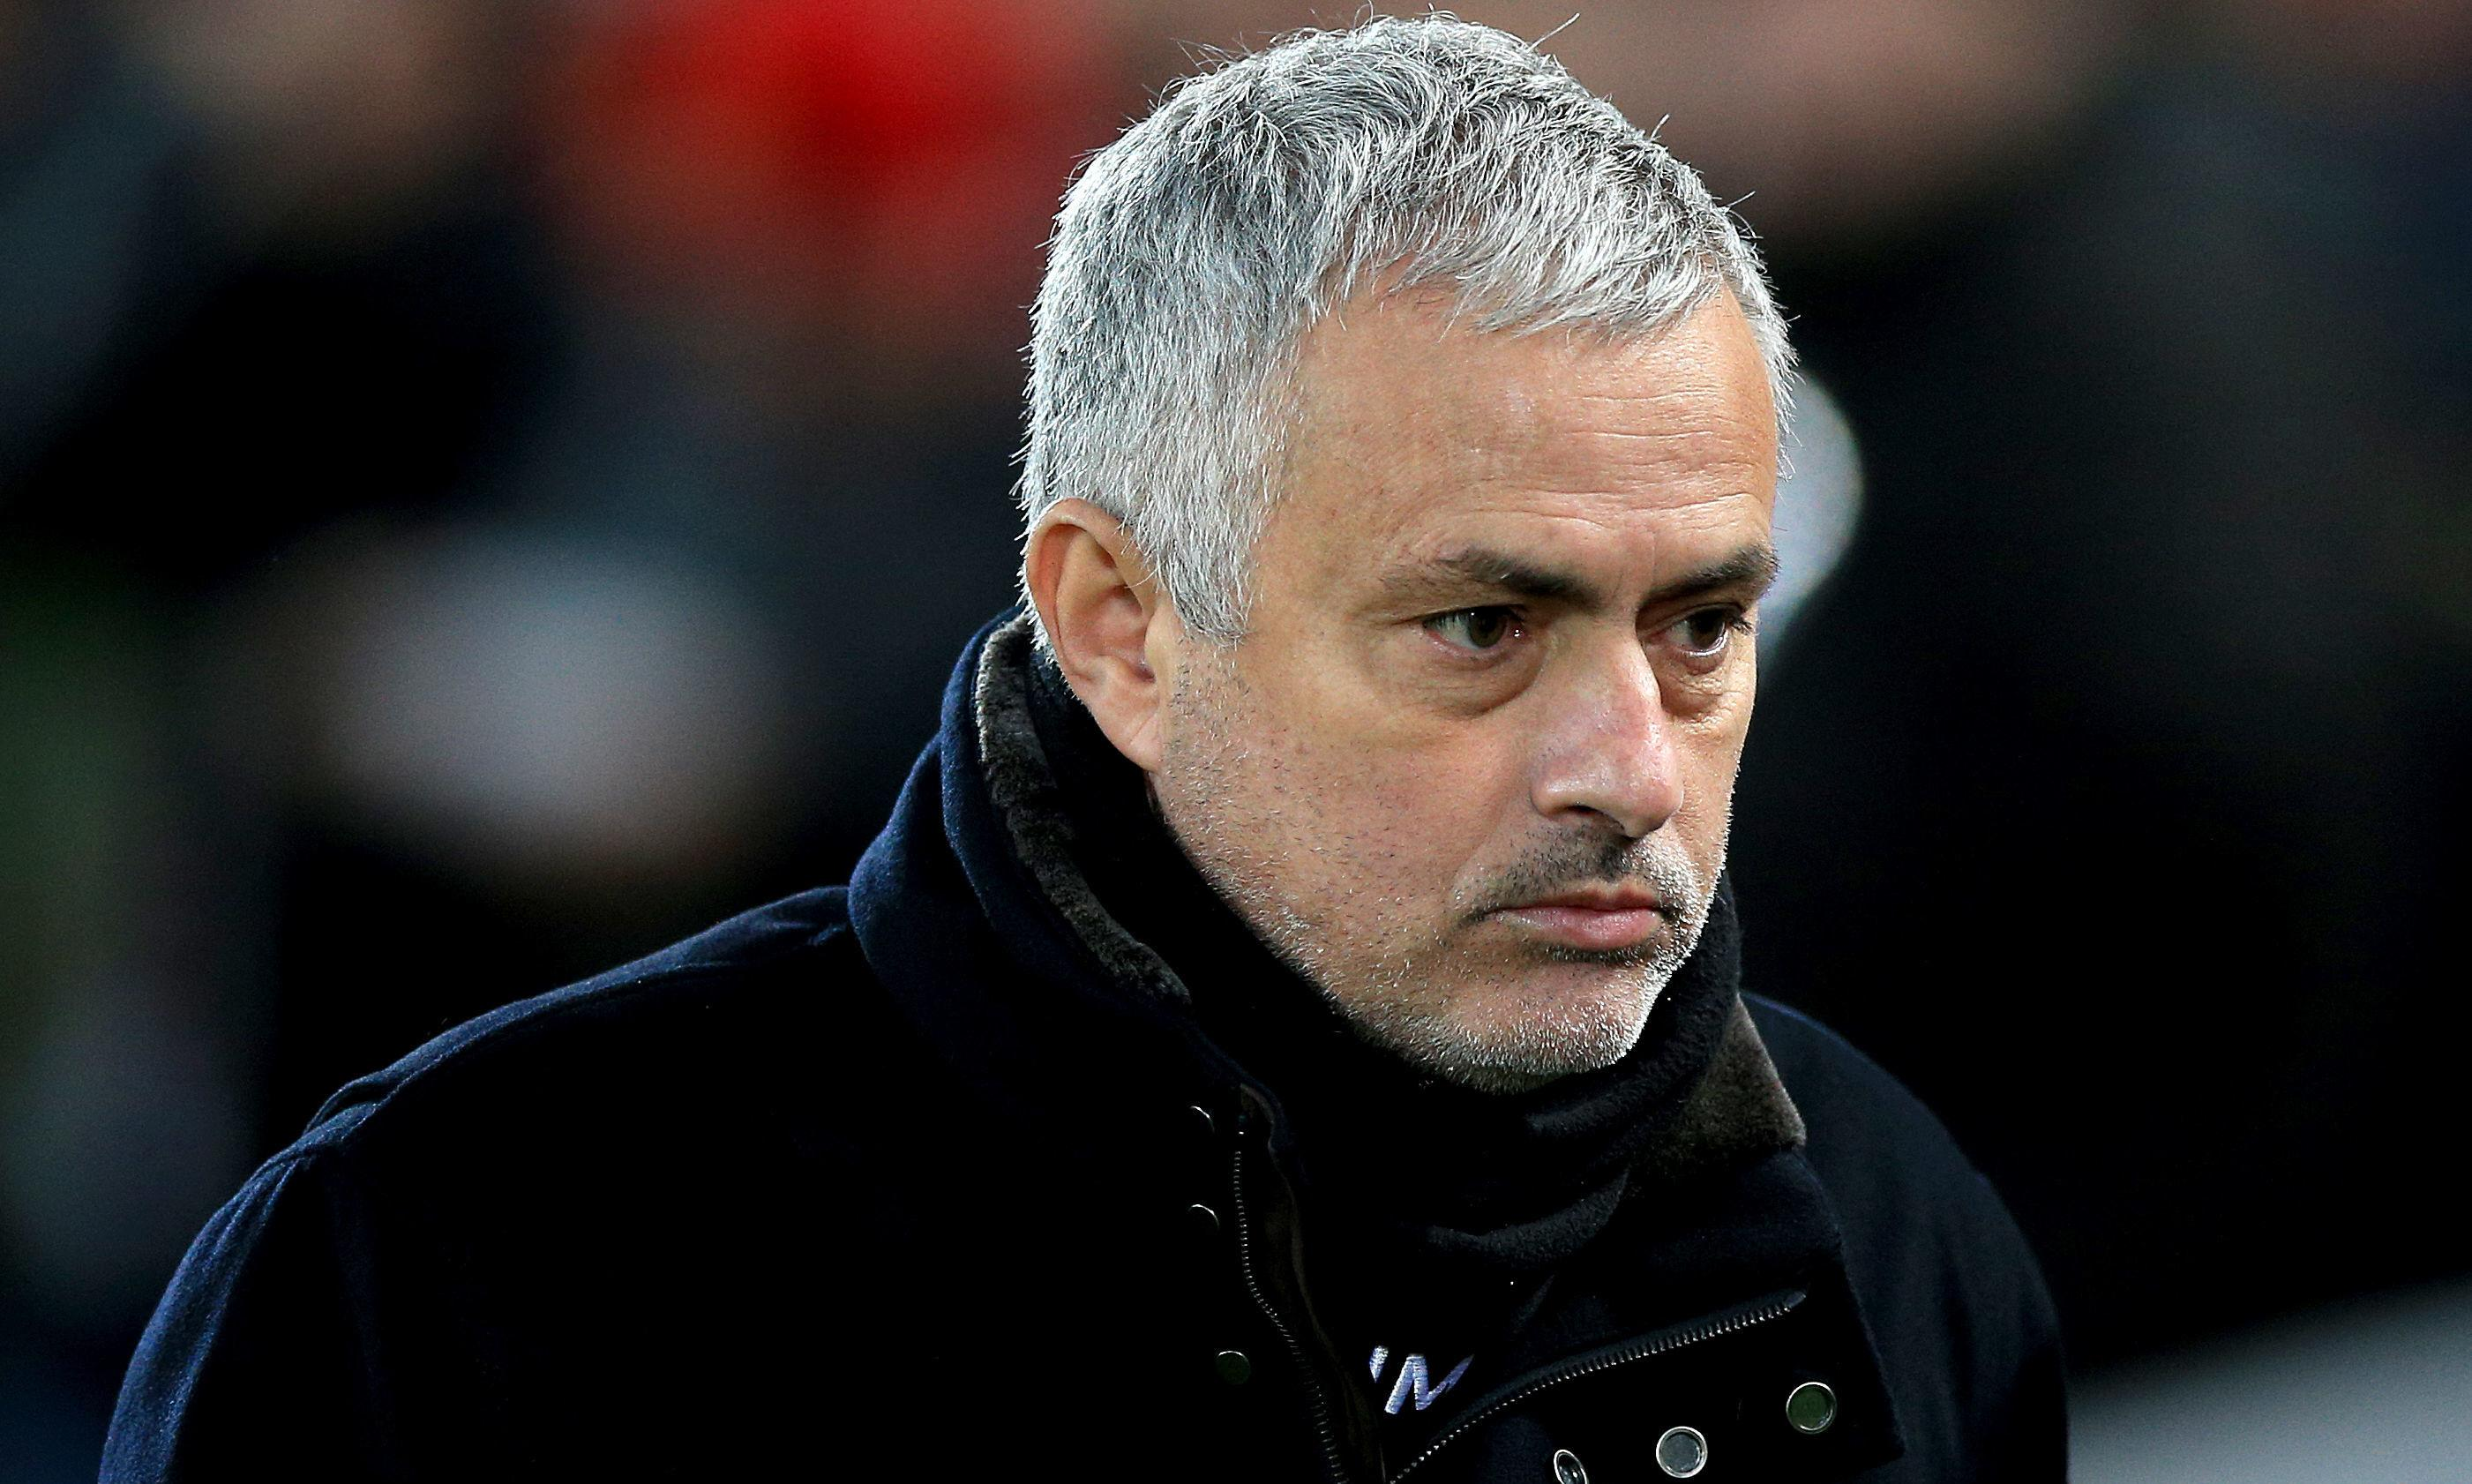 Football transfer rumours: José Mourinho lined up by PSG?